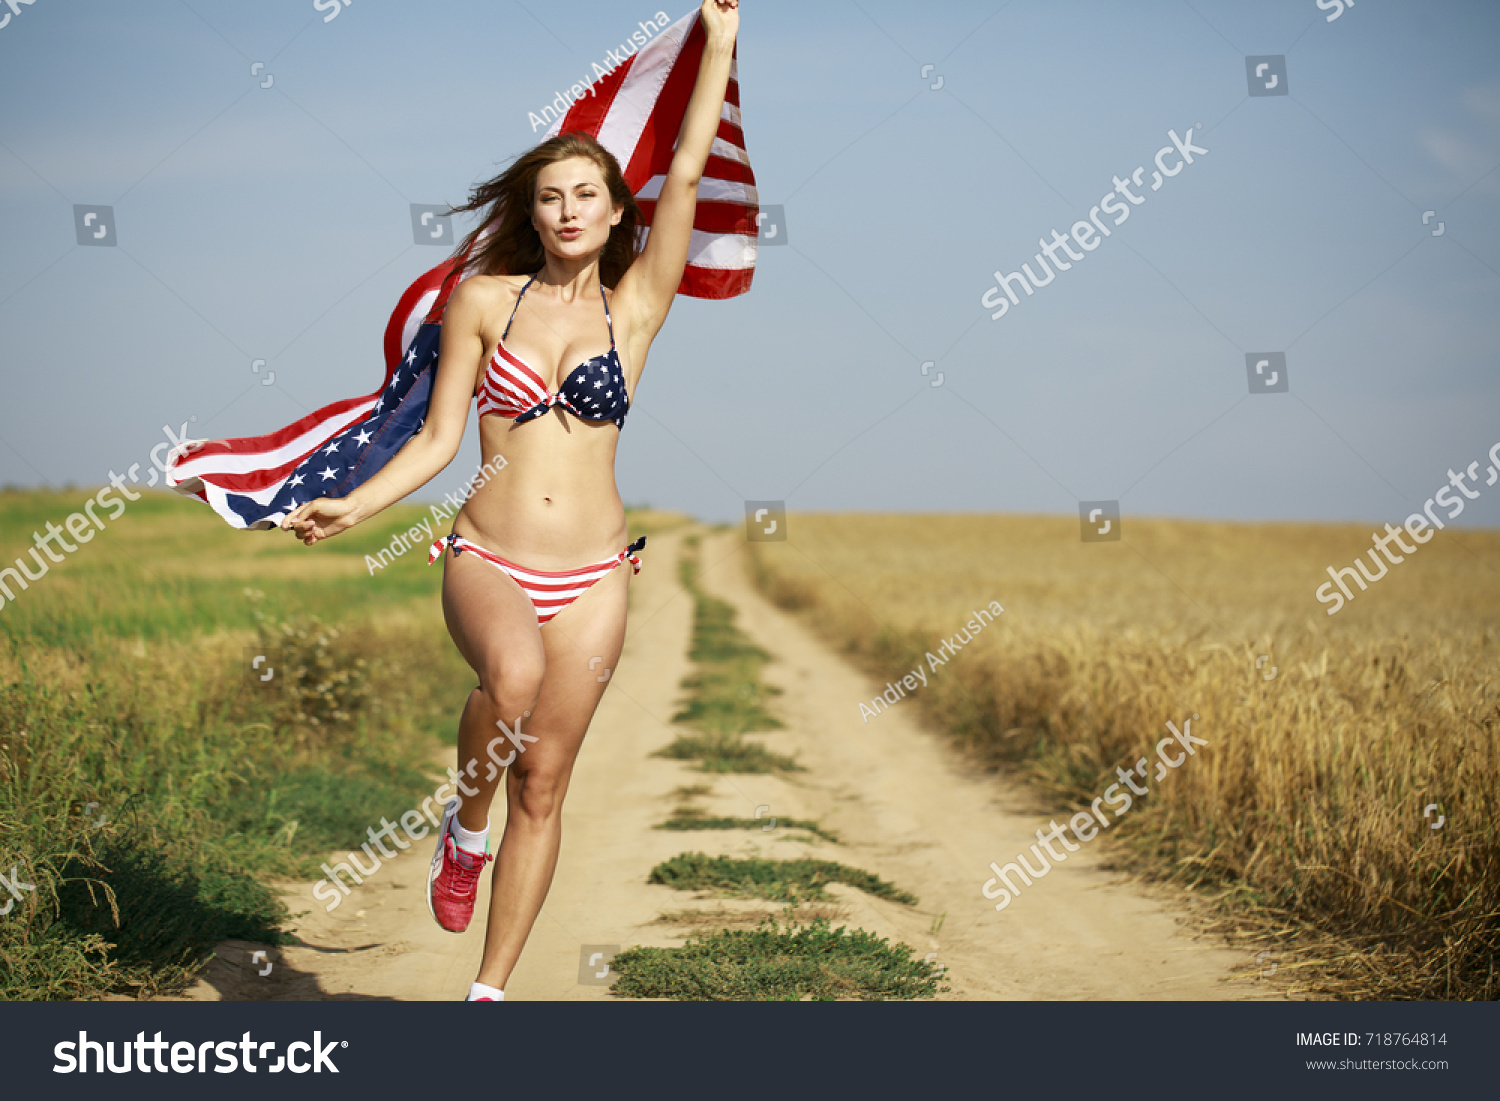 a43b3e38adbf5 Young beautiful blonde woman in sexy American flag bikini in a wheat field